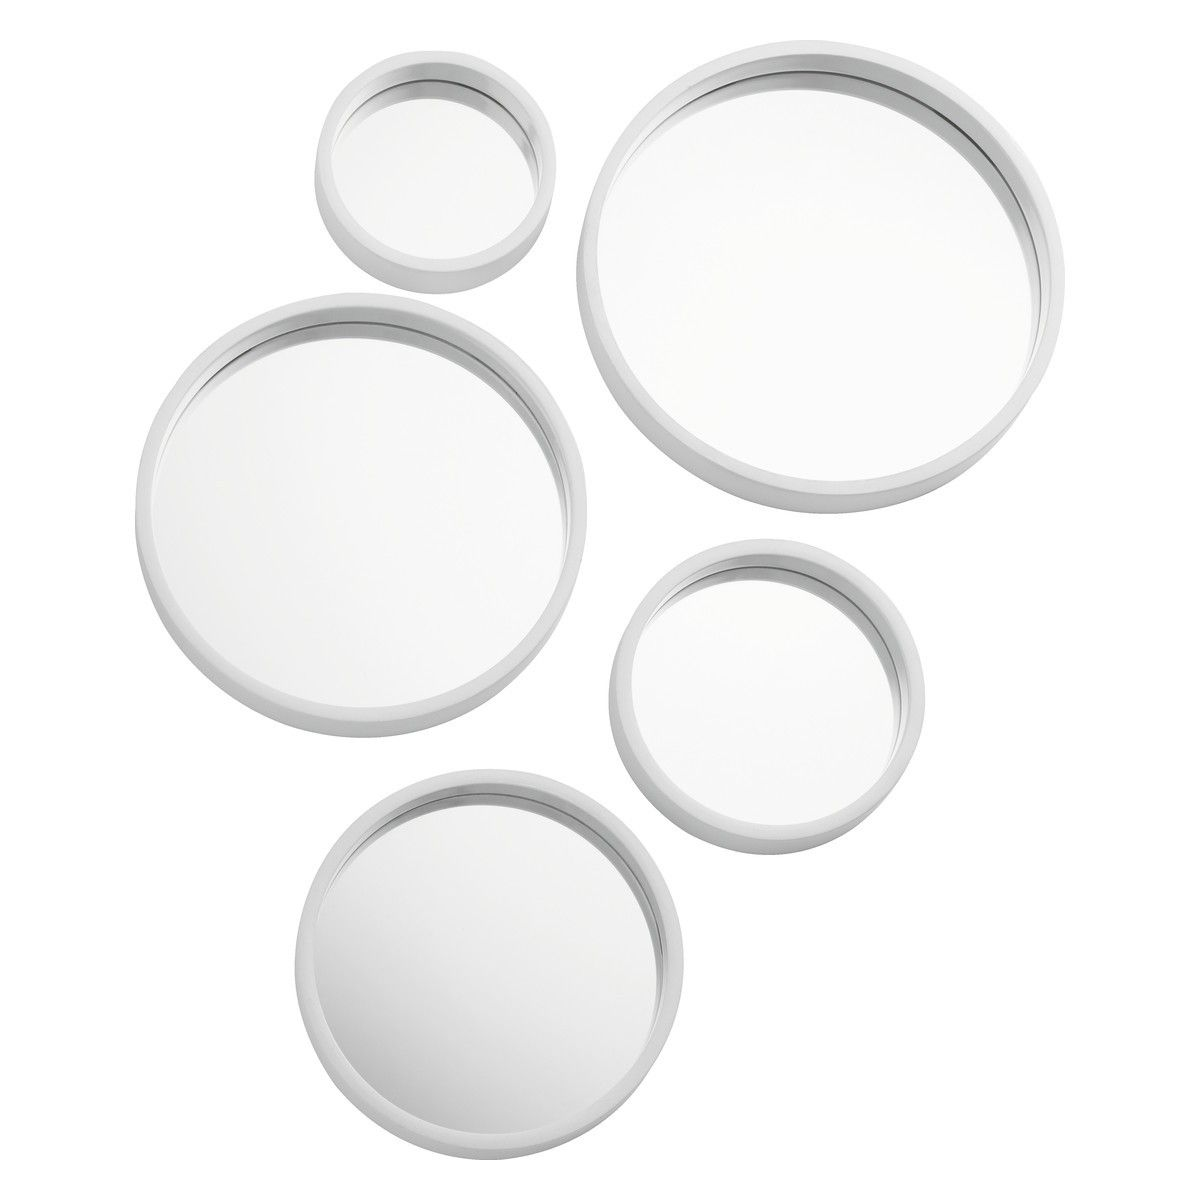 Buy Round Mirror Mirror Mirror Set Of 5 White Round Mirrors Buy Now At